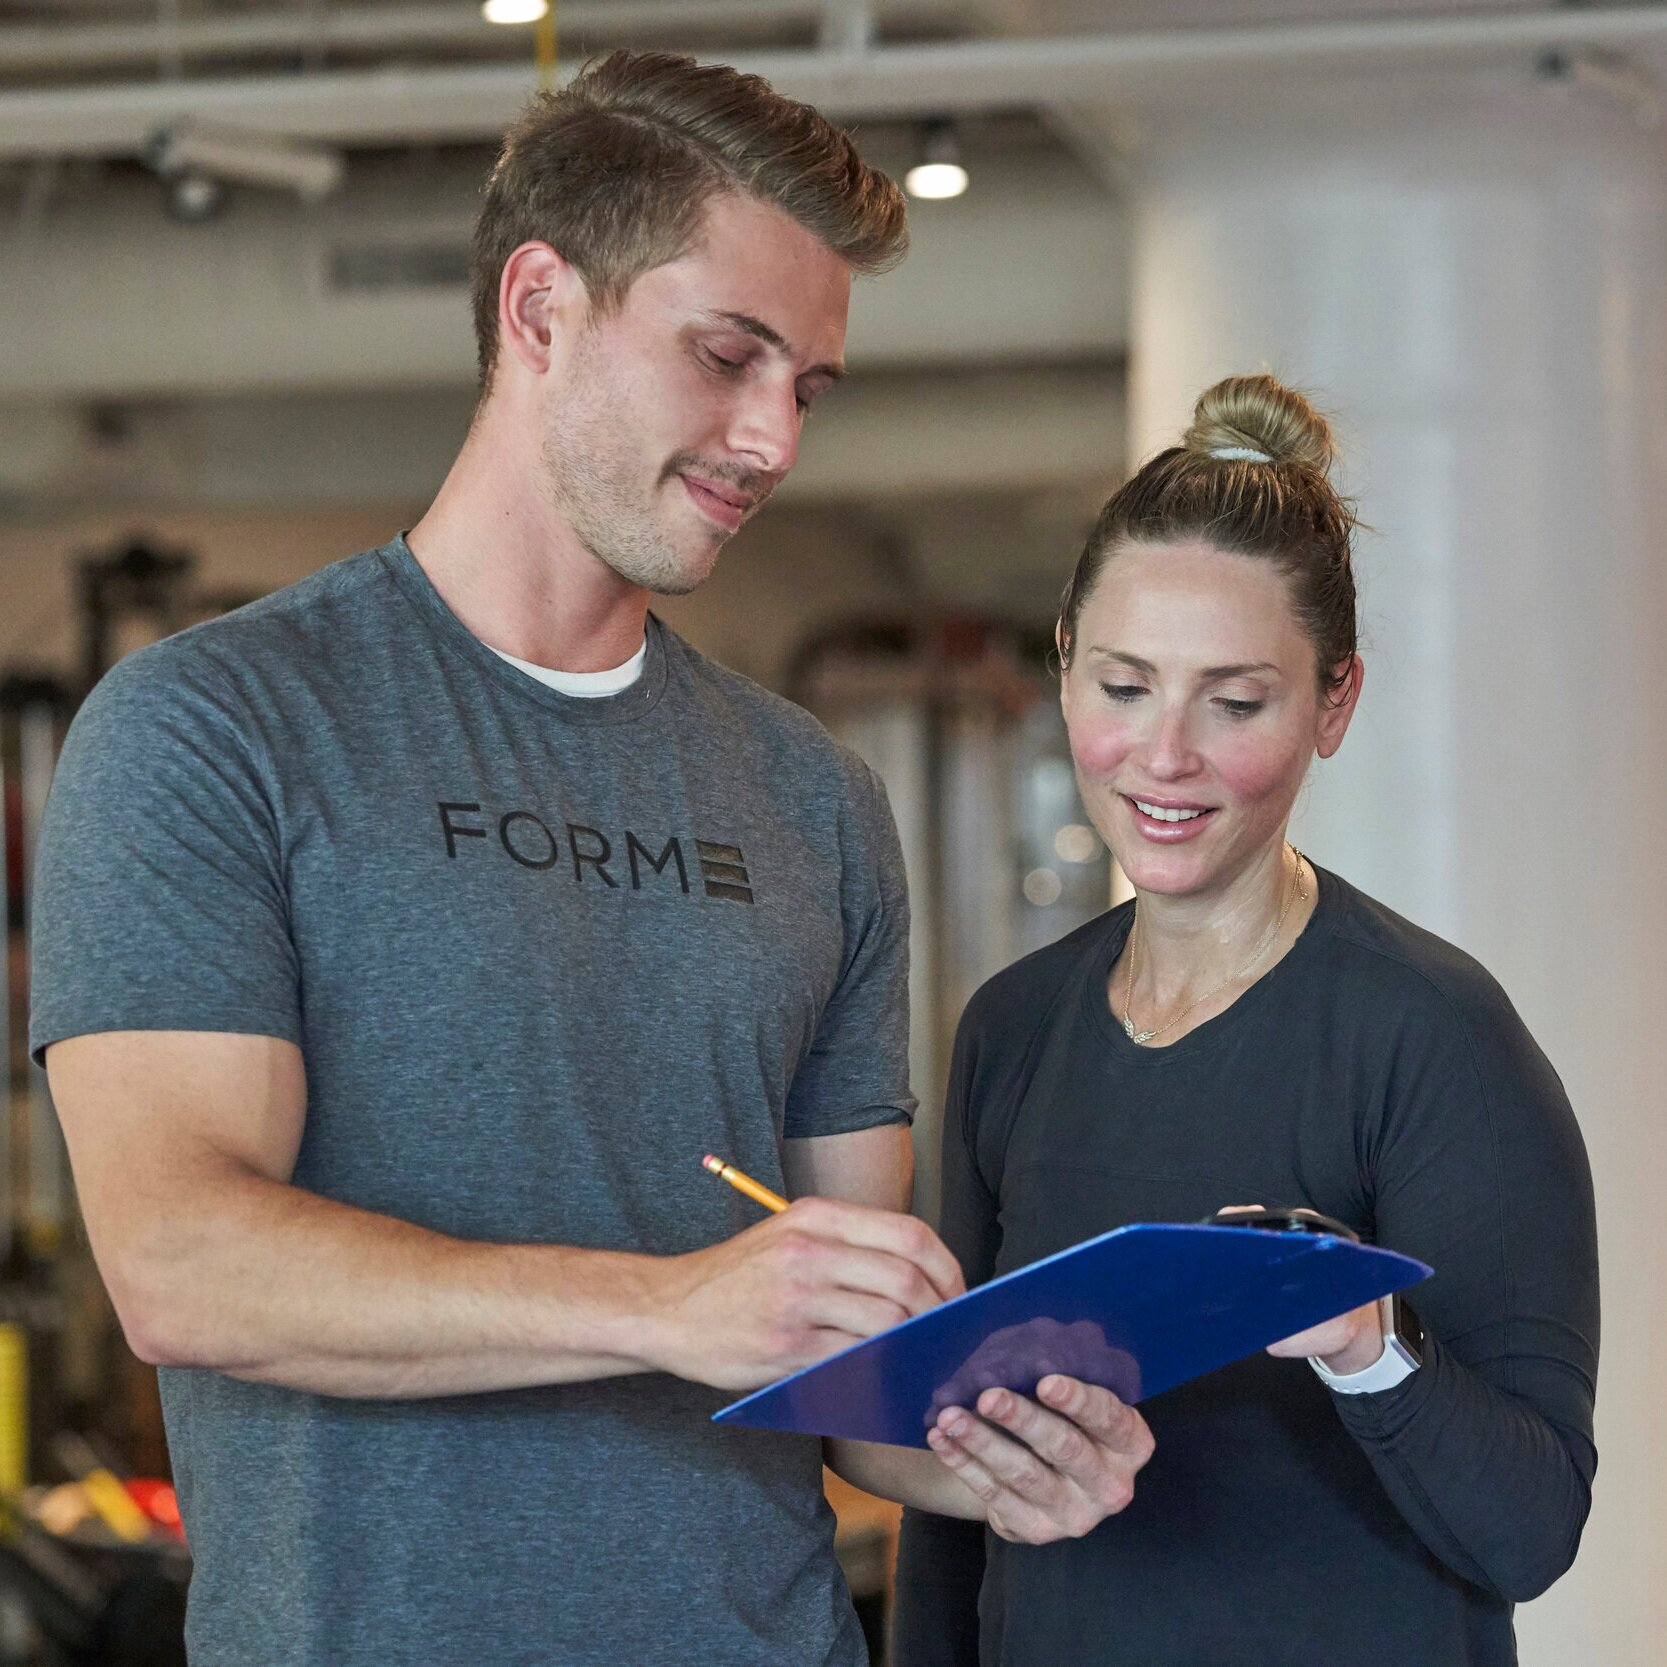 NEXT—WE DESIGN YOUR PLAN - Real metrics lead to real results. Our trainers combine data from your 1 hour fitness assessment with information about your lifestyle to build a program that is specific to you.